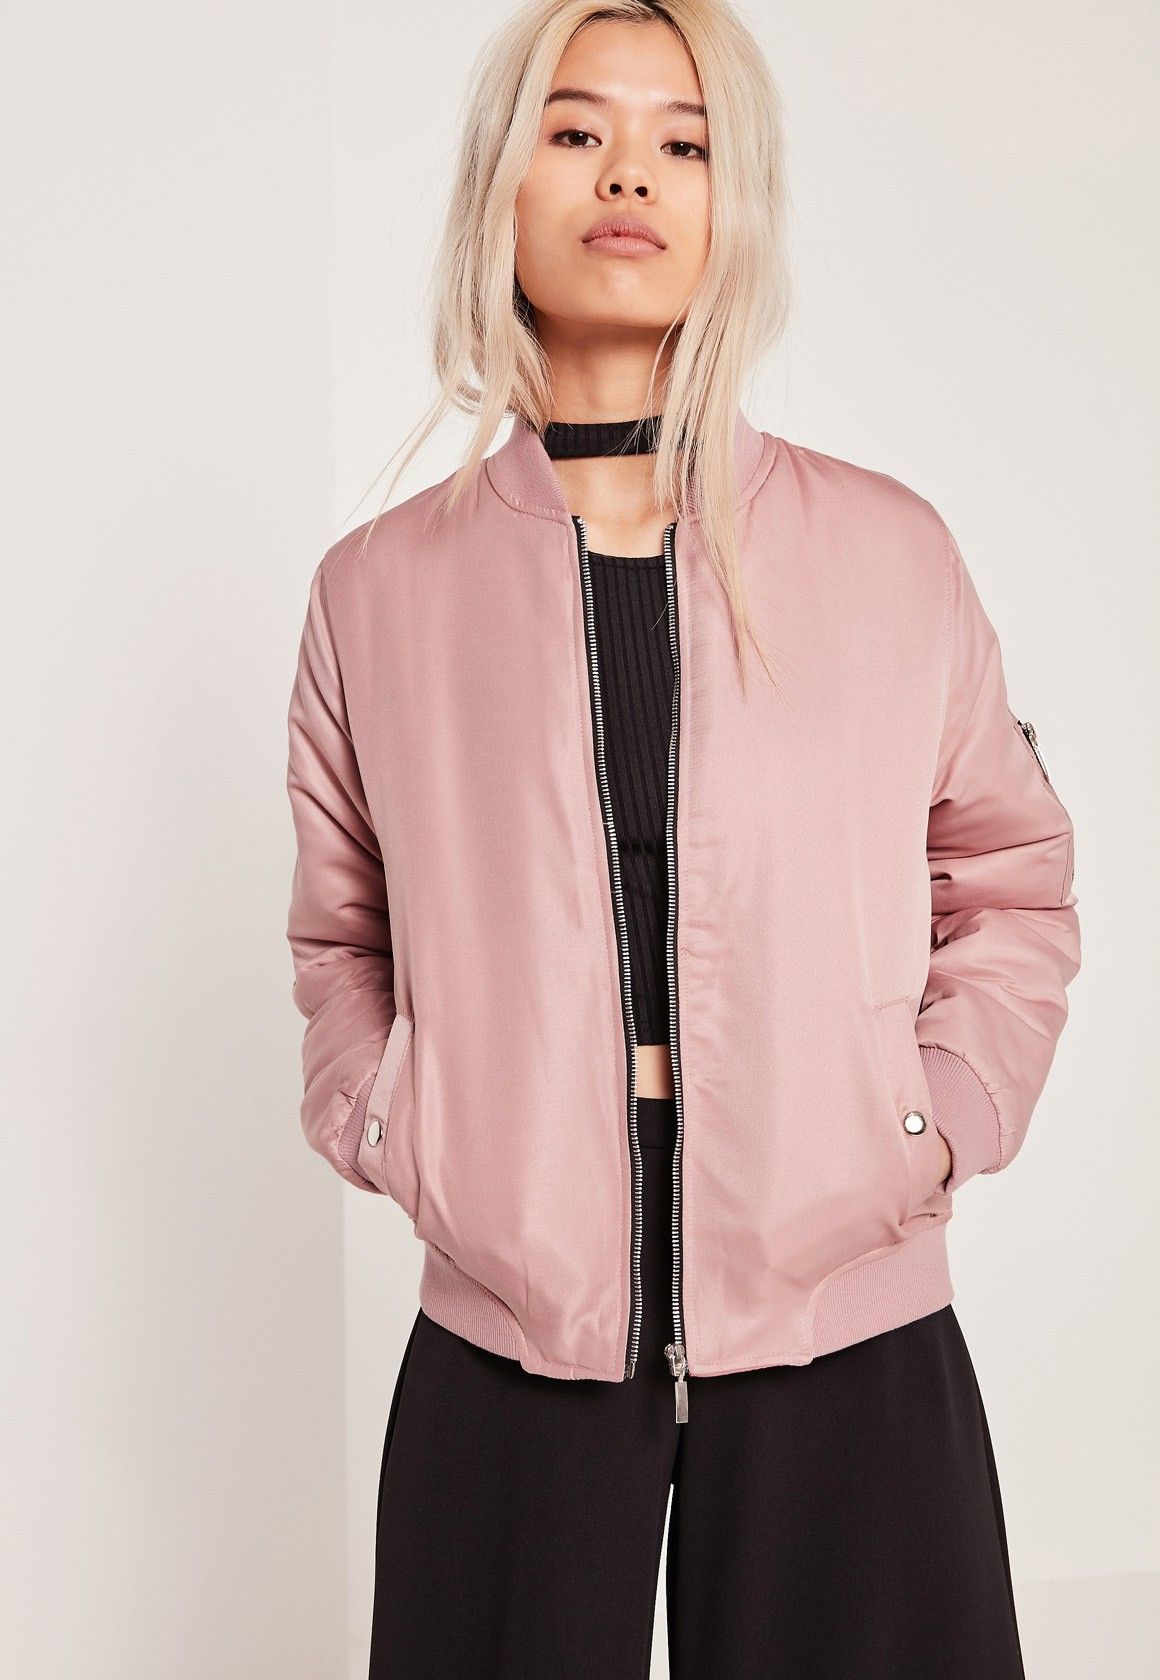 fb75516f0 Missguided - Soft Touch Bomber Jacket Pink - CA$48.75 | Outfits in ...